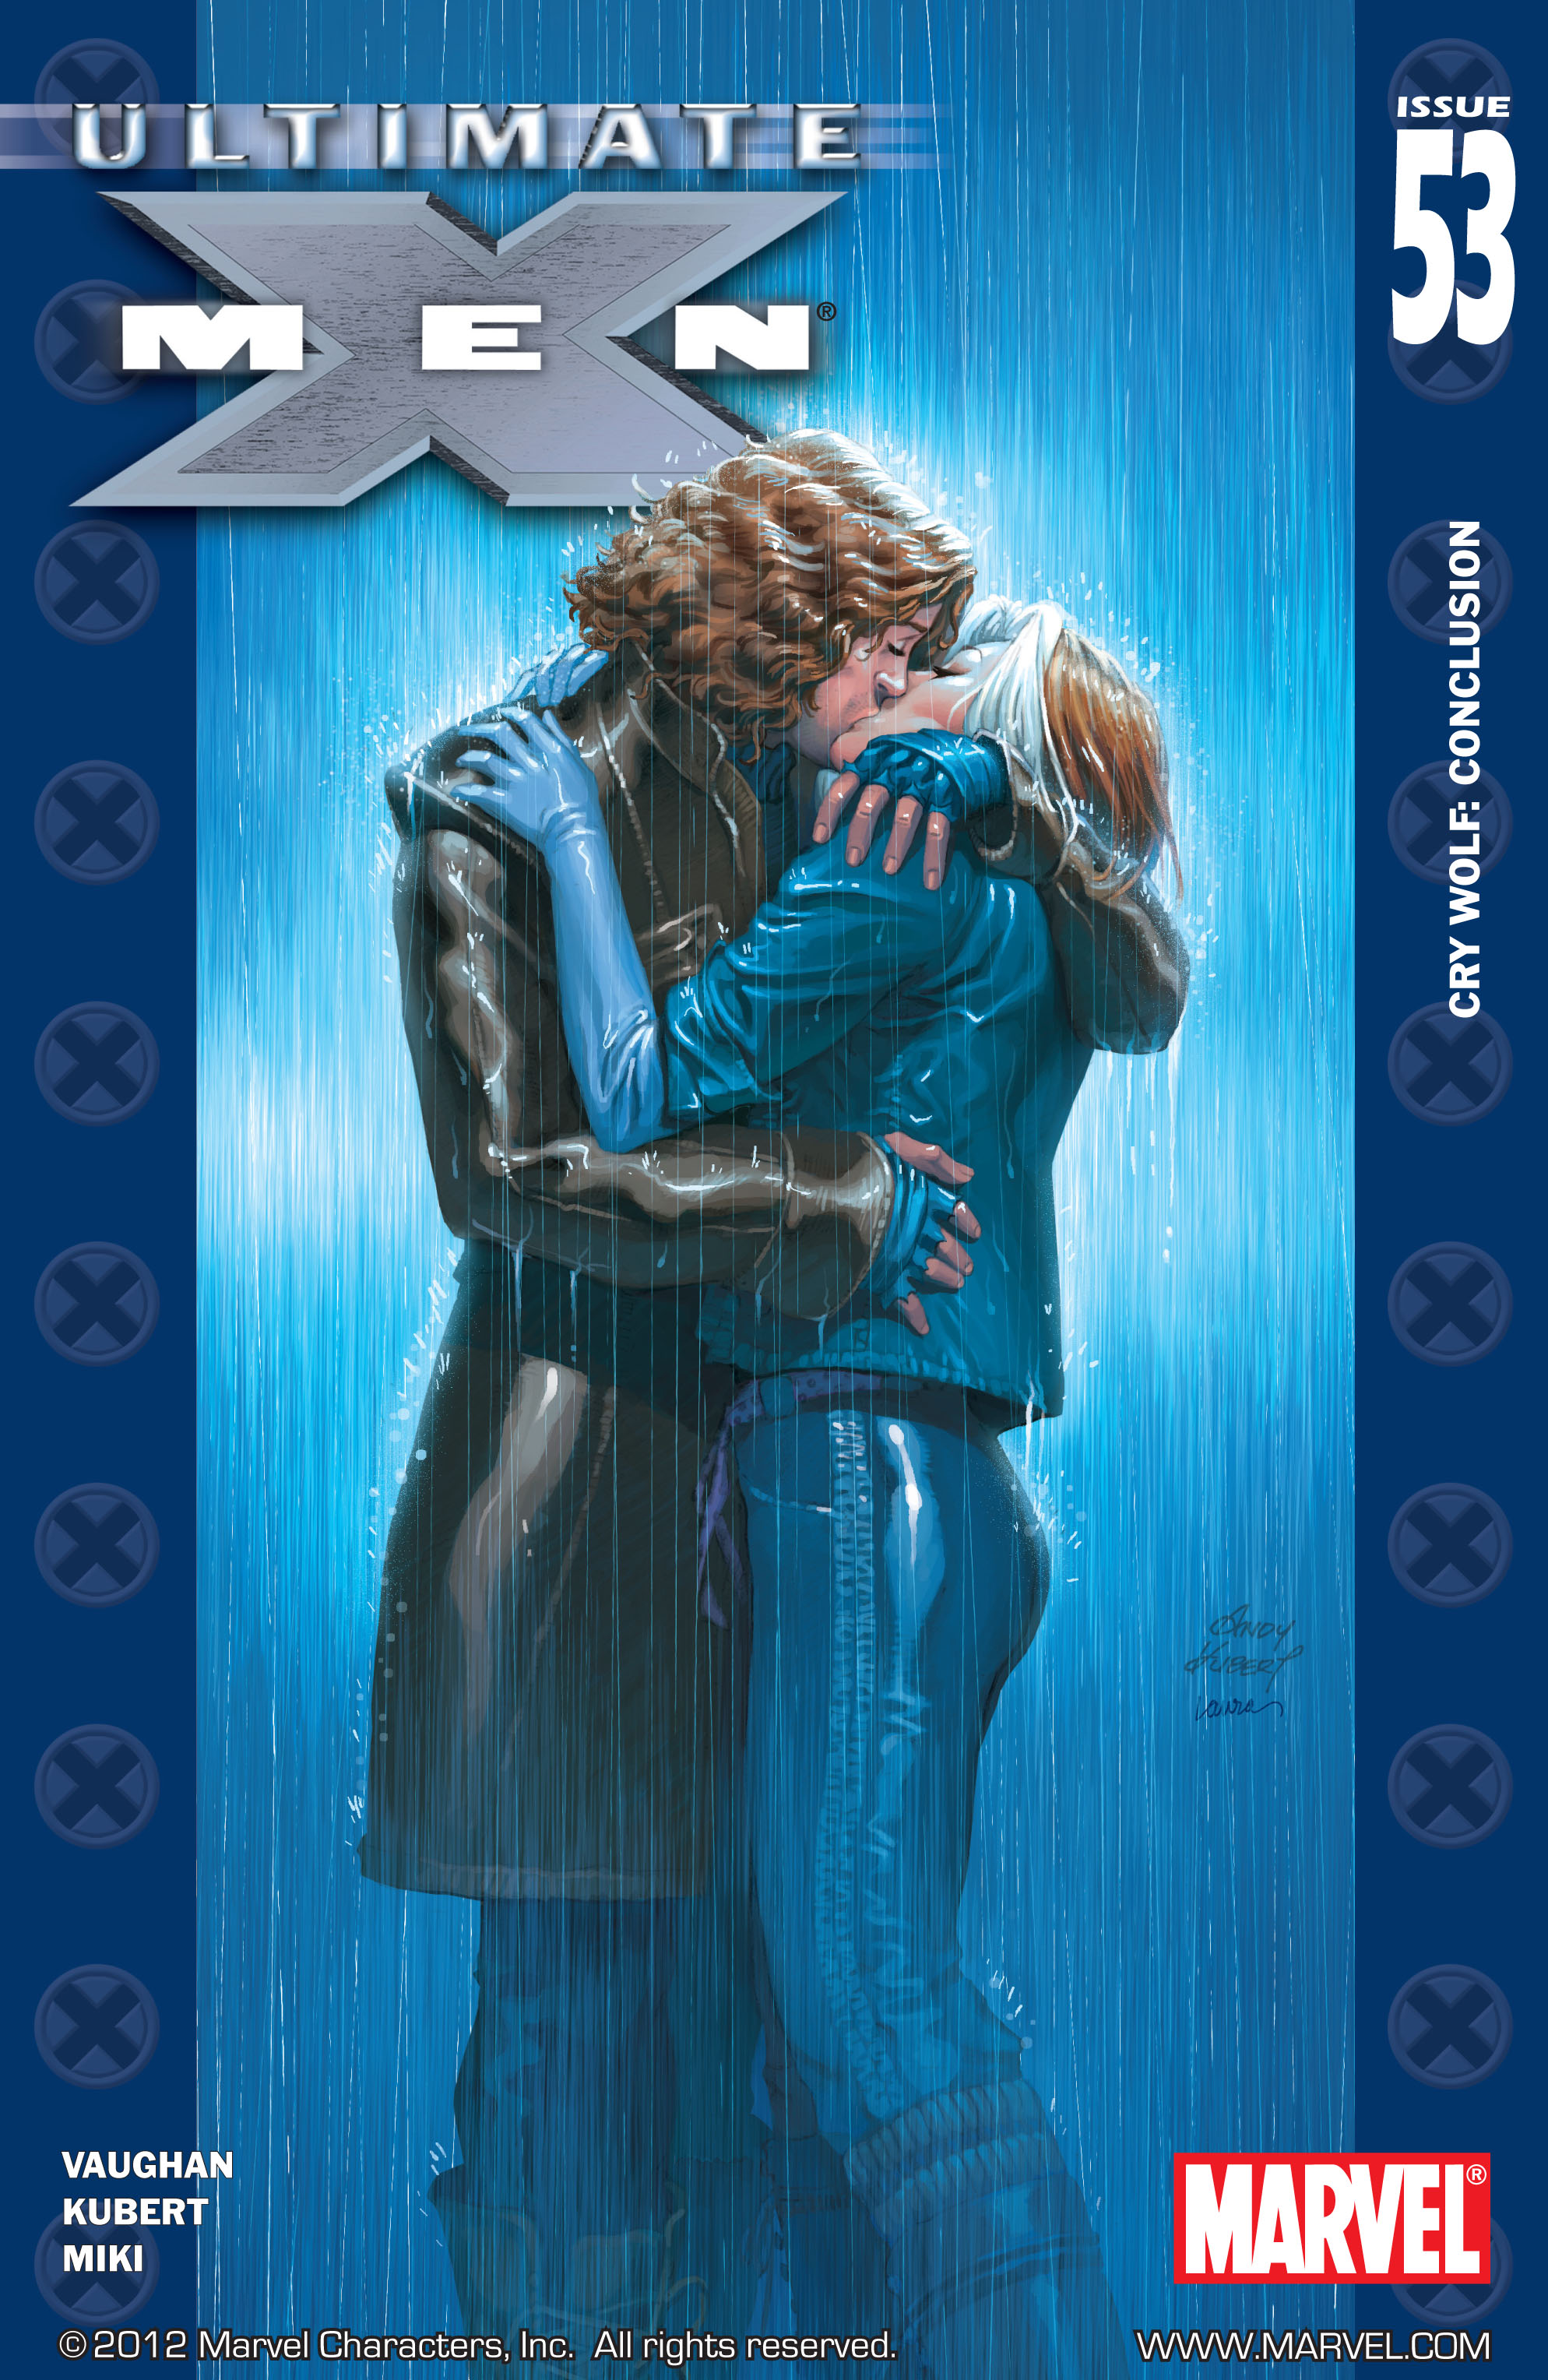 Read online Ultimate X-Men comic -  Issue #53 - 1